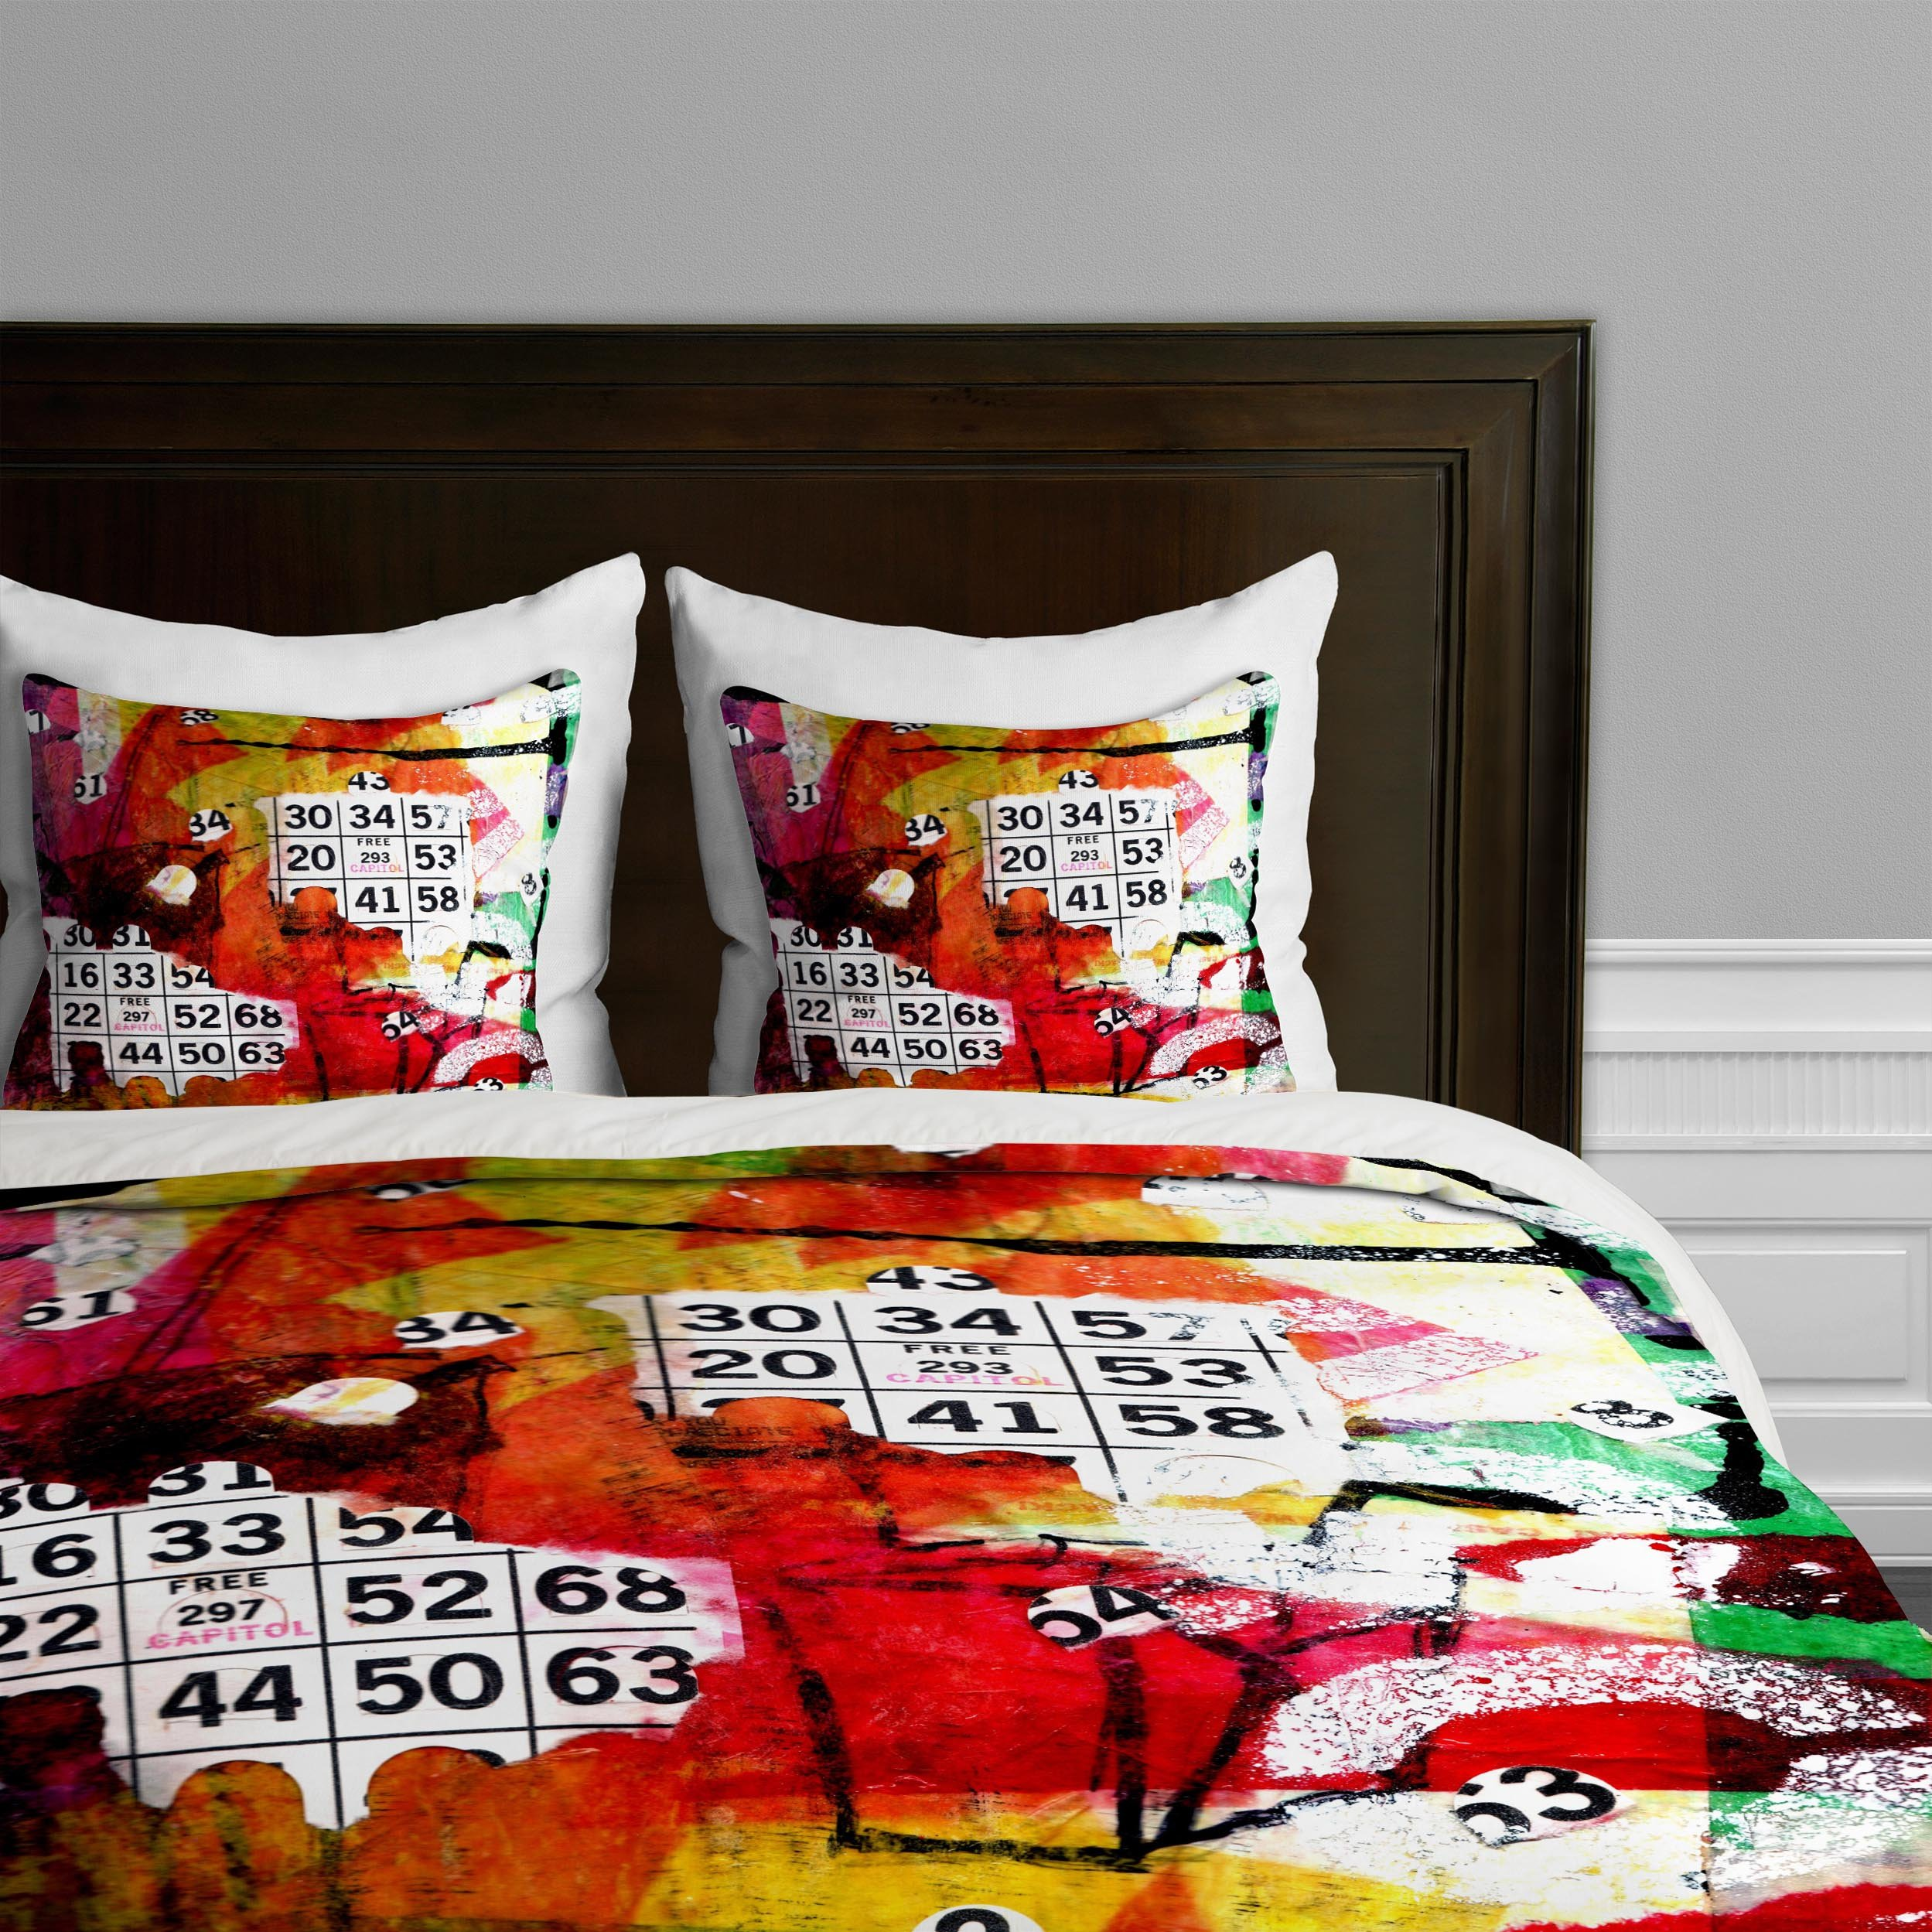 Deny Designs  Sophia Buddenhagen Bright Bingo 2 Duvet Cover, Twin/Twin XL